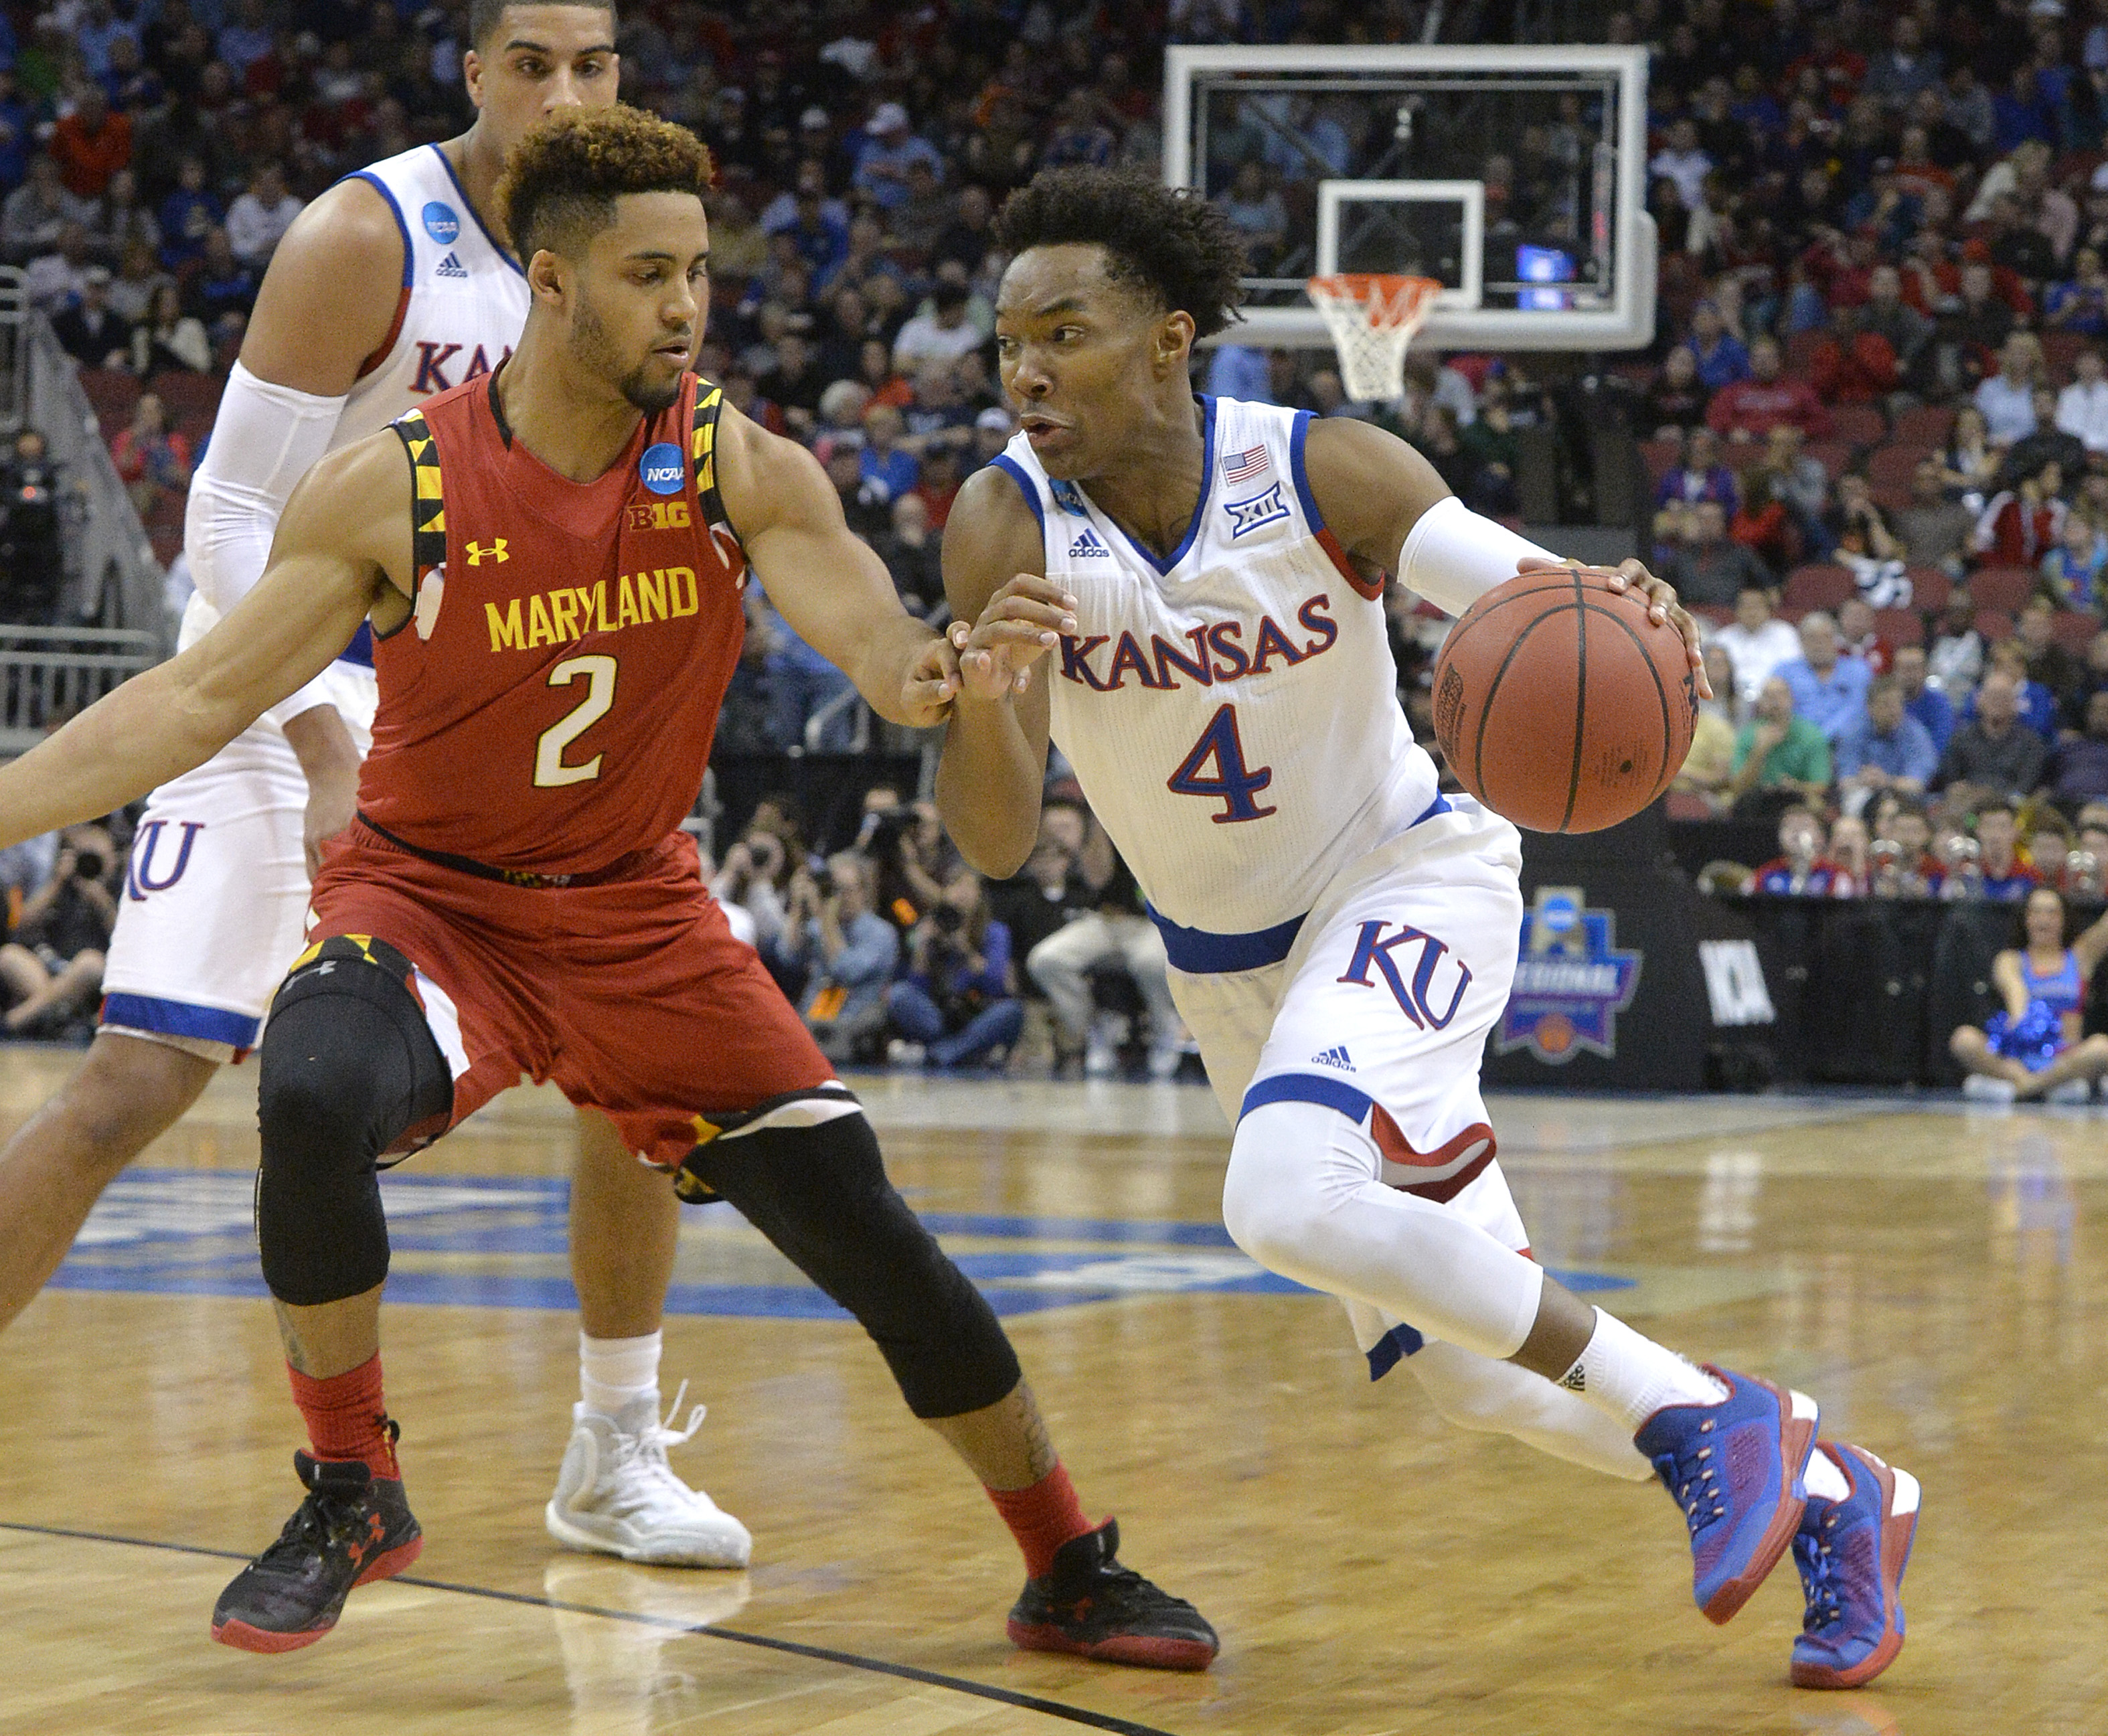 Kansas guard Devonte' Graham (4) drives against Maryland guard Melo Trimble (2) during the first half of an NCAA college basketball game in the regional semifinals of the men's NCAA Tournament in Louisville, Ky., Thursday, March 24, 2016. (AP Photo/Timoth